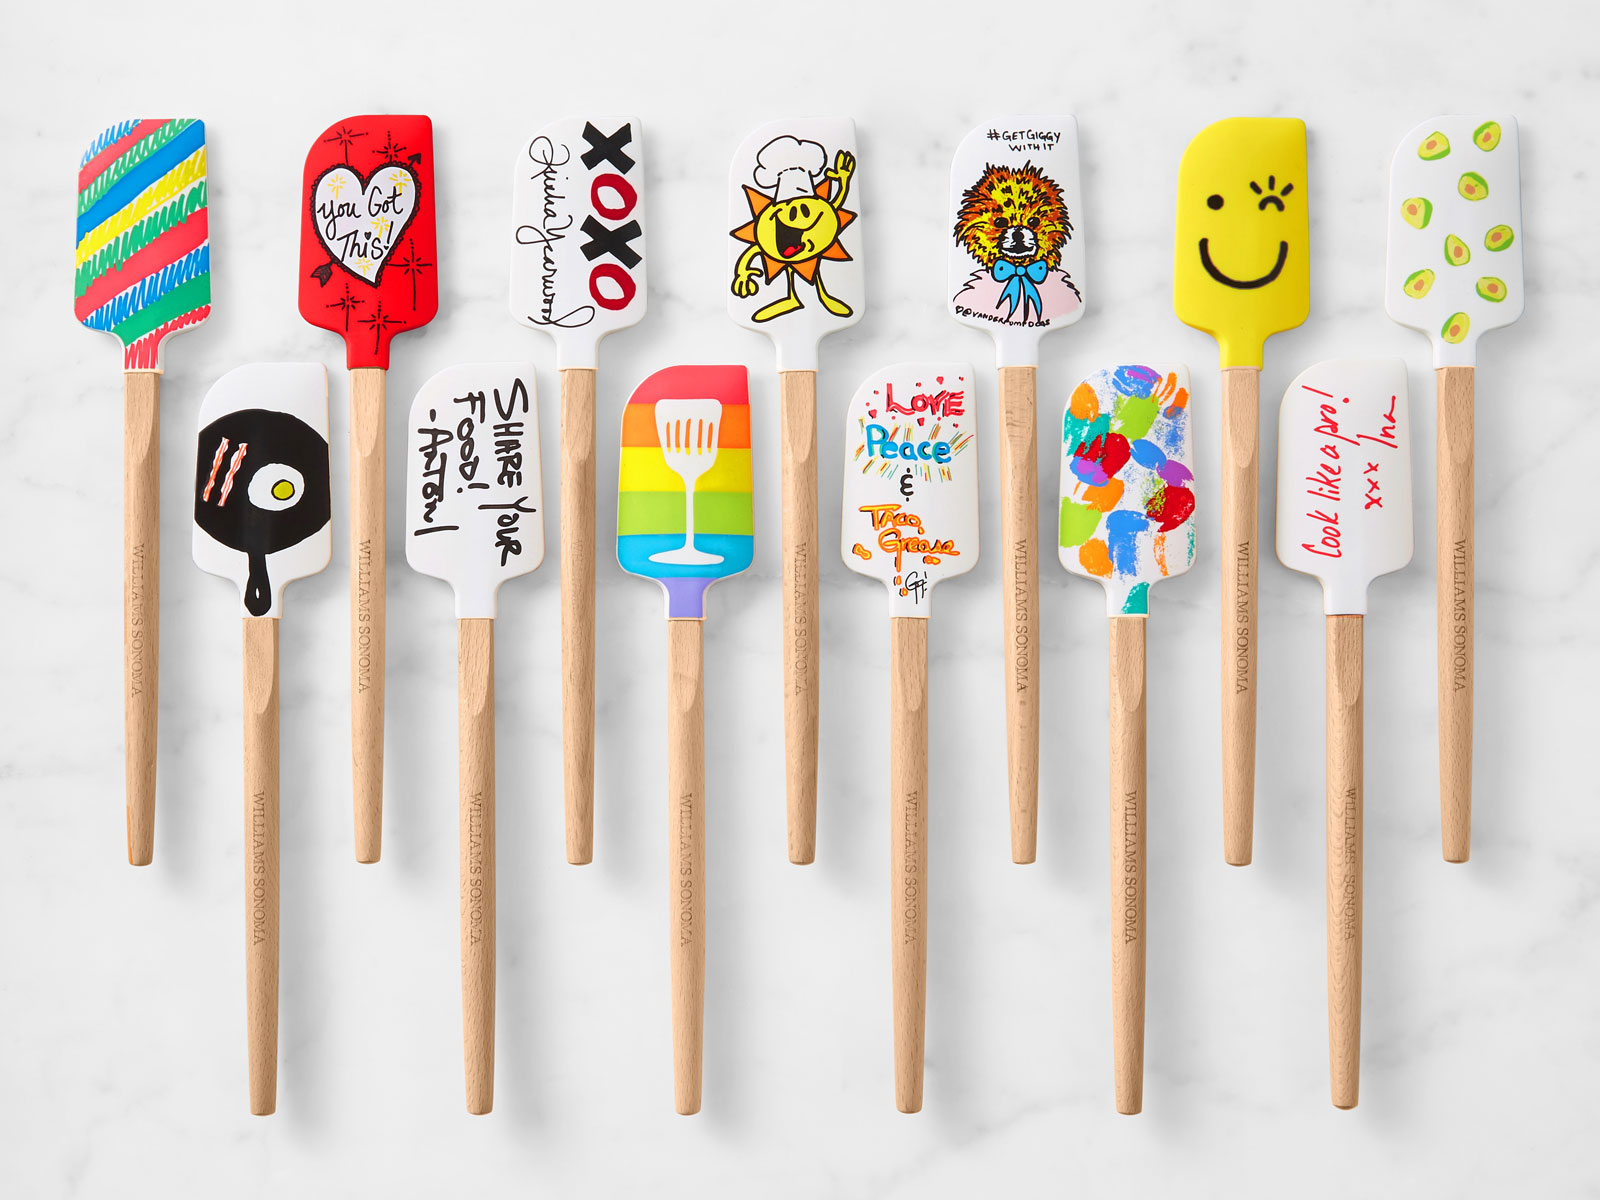 José Andrés, Ina Garten, Antoni Porowski, Guy Fieri, and Sean Brock Designed These Spatulas for Williams Sonoma